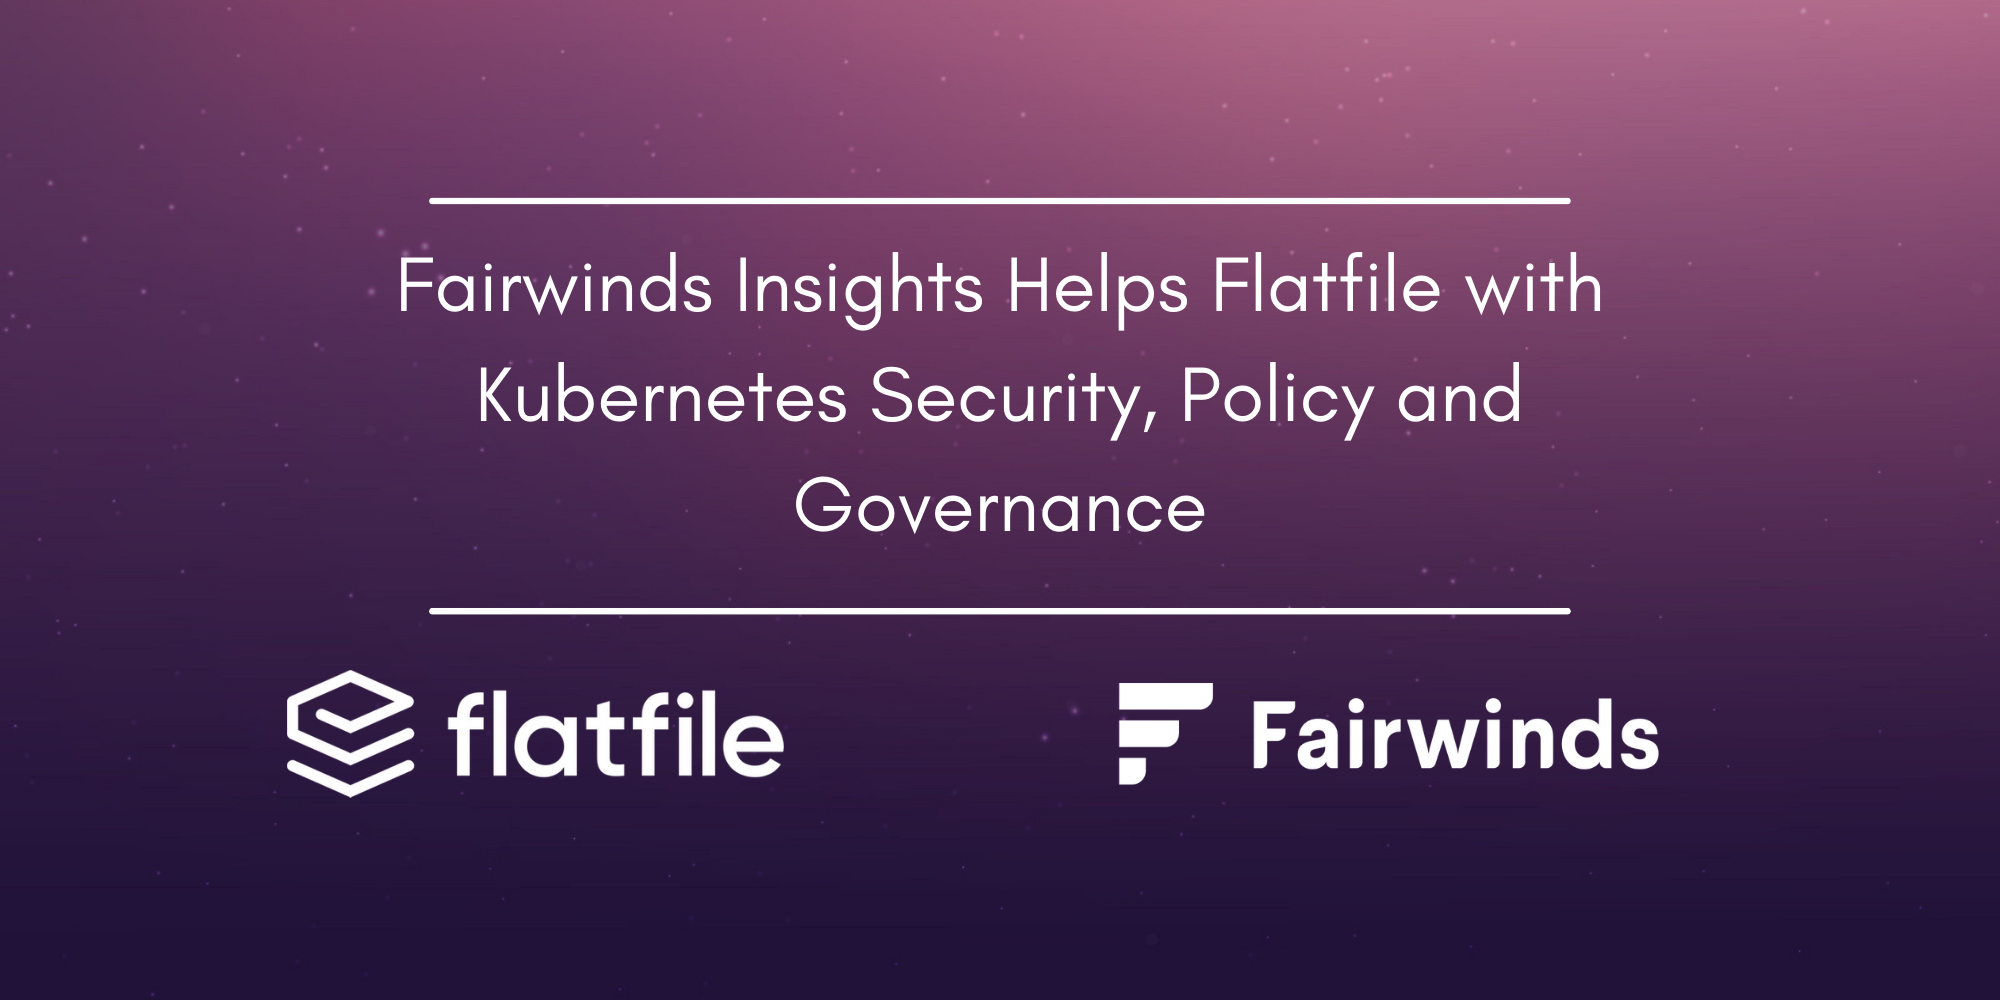 Fairwinds Insights Helps Flatfile with Kubernetes Security, Policy and Governance